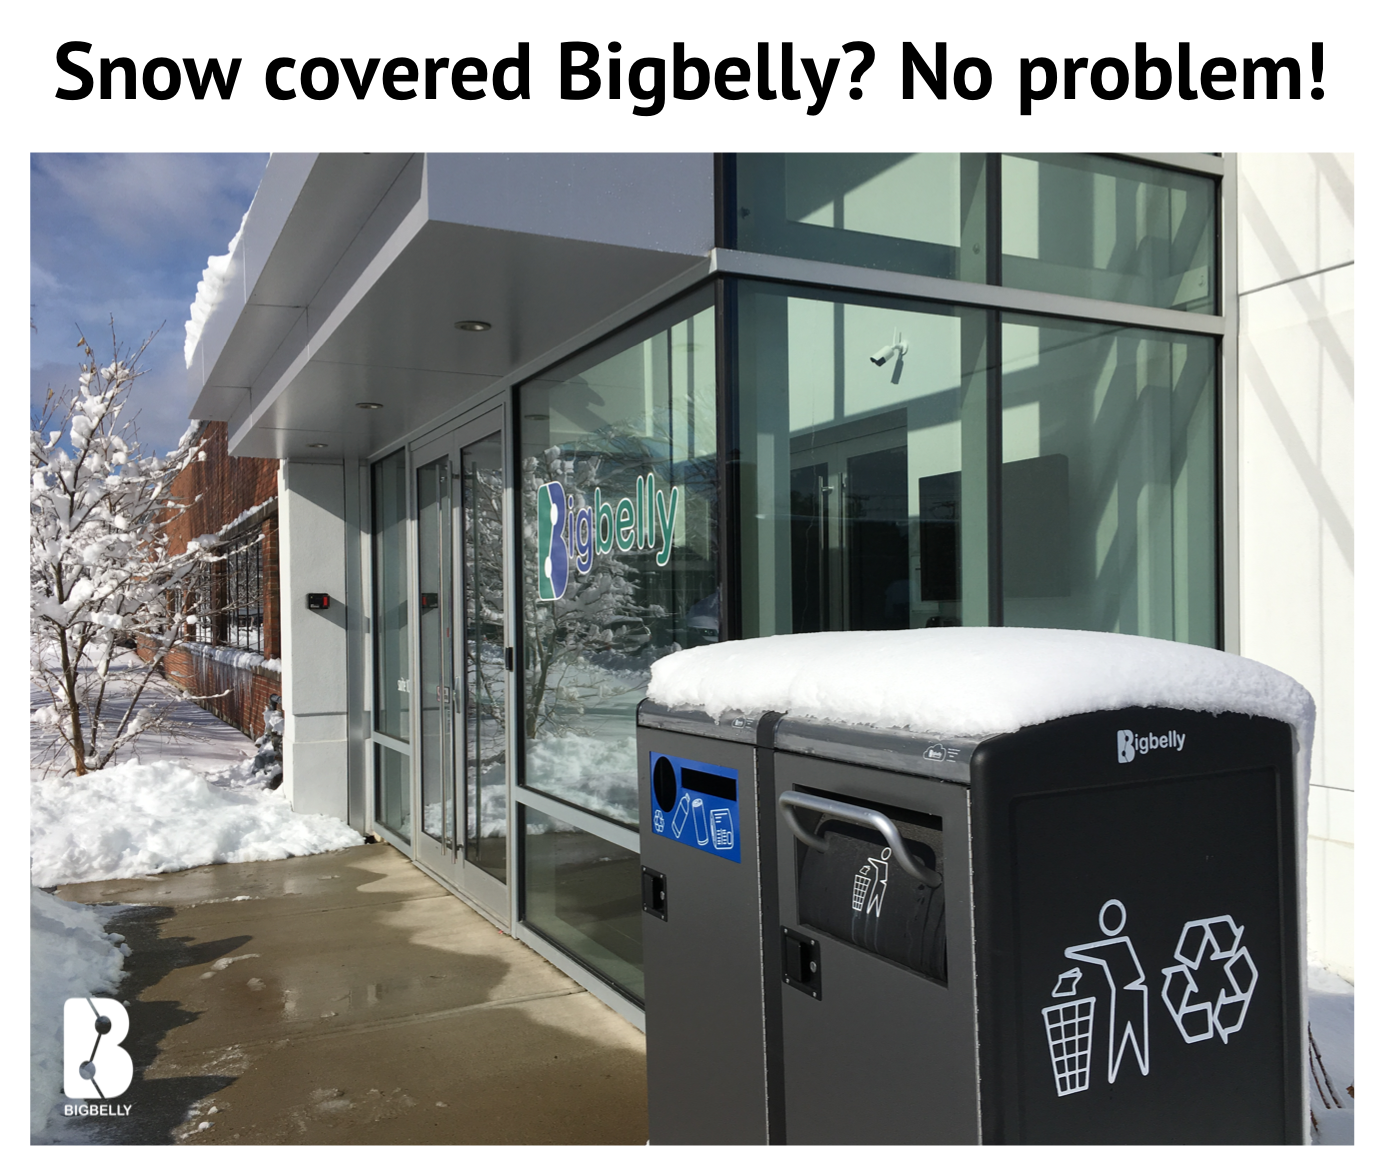 Snow Covered Bigbelly Continues to Do Its Job!